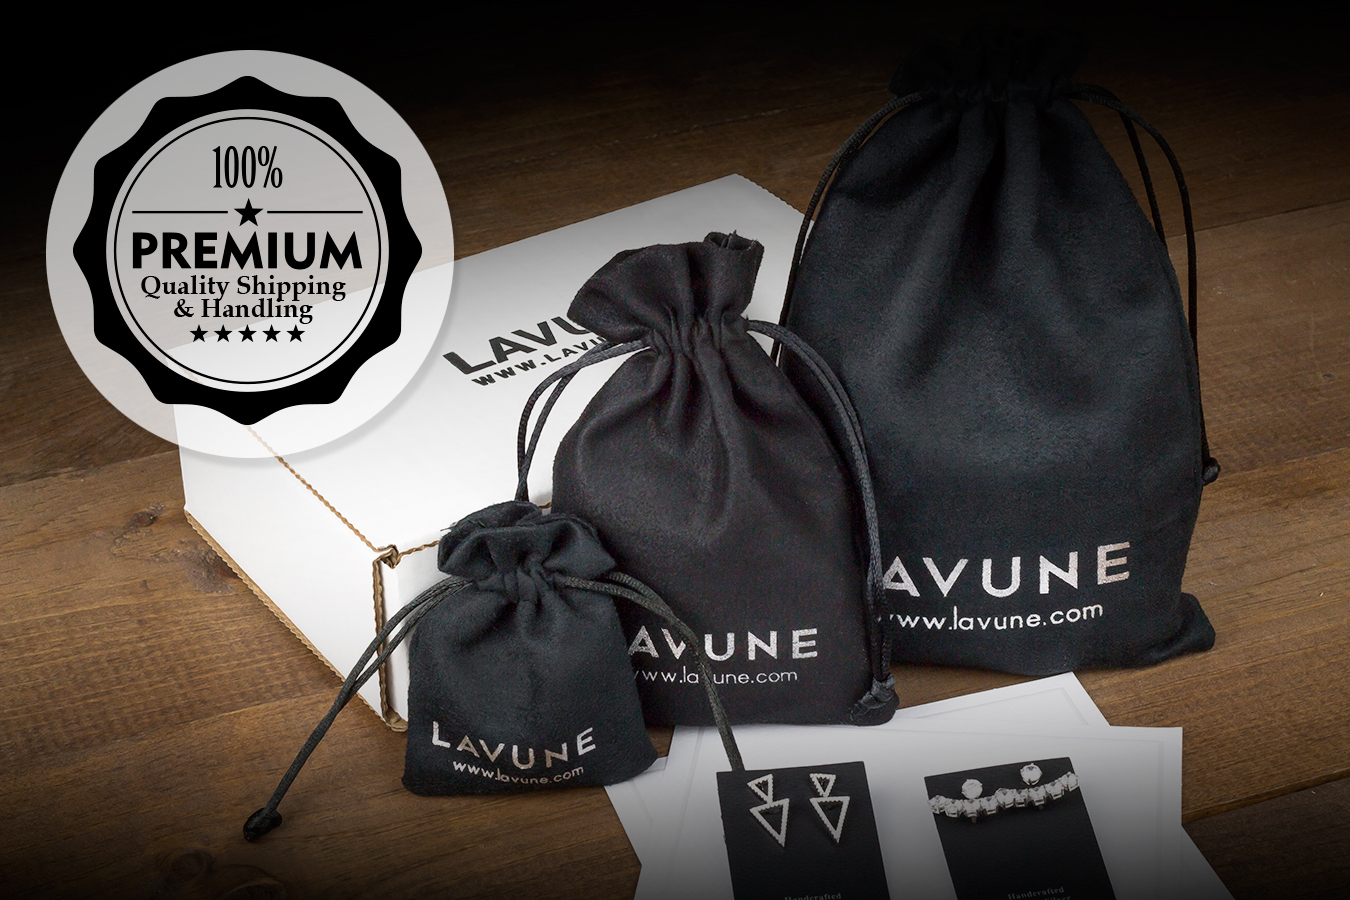 Lavune shipping banner